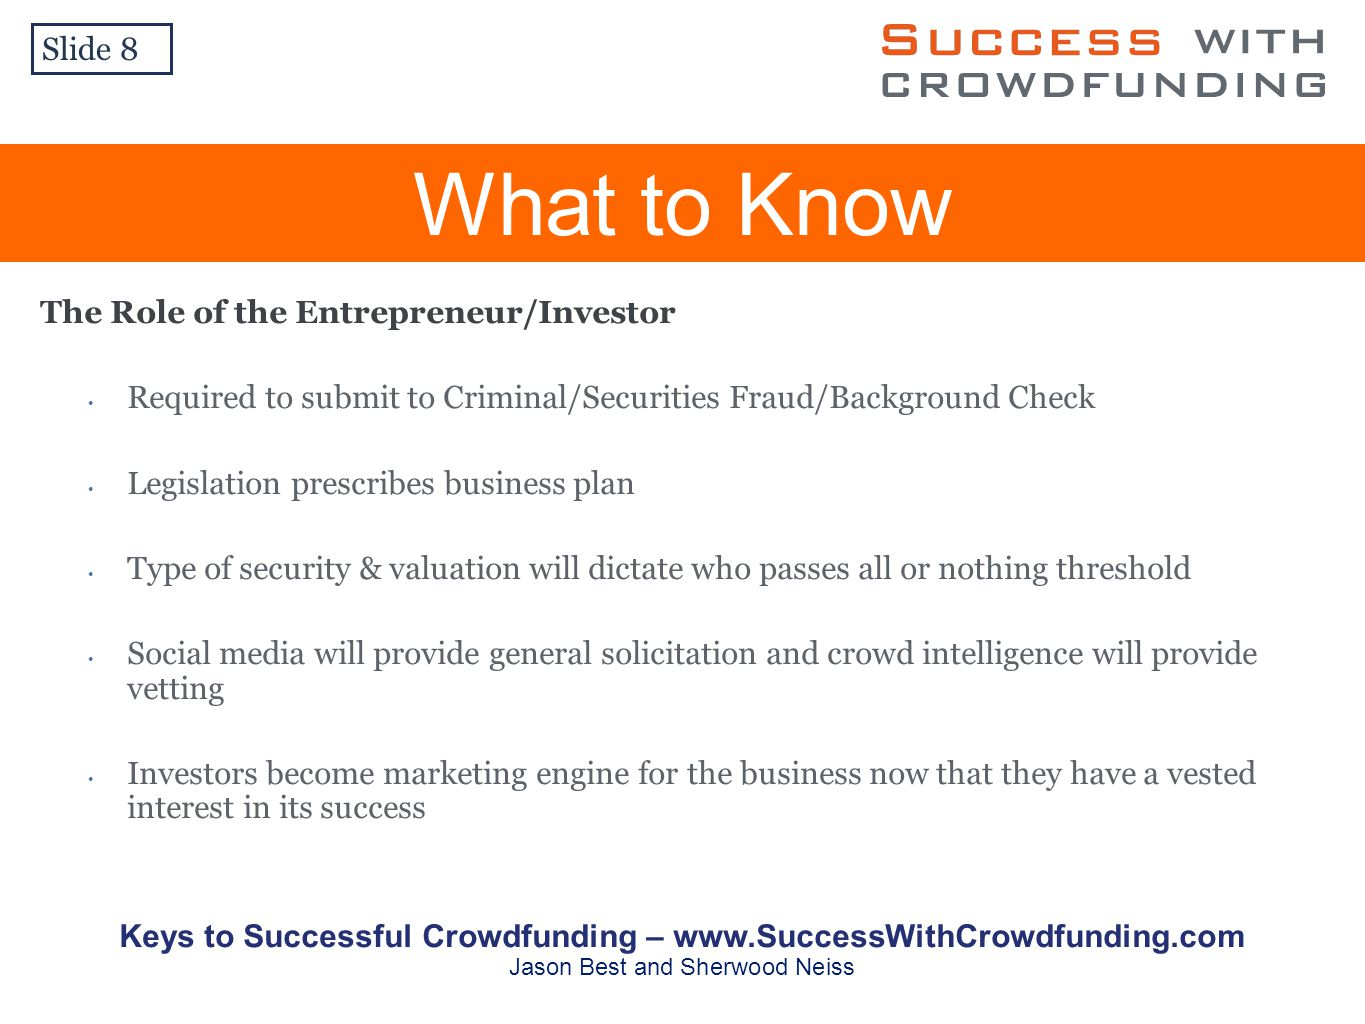 What to Know The Role of the Entrepreneur/Investor Required to submit to Criminal/Securities Fraud/Background Check Legislation prescribes business plan Type of security & valuation will dictate who passes all or nothing threshold Social media will provide general solicitation and crowd intelligence will provide vetting Investors become marketing engine for the business now that they have a vested interest in its success Slide 8 Keys to Successful Crowdfunding –   Jason Best and Sherwood Neiss